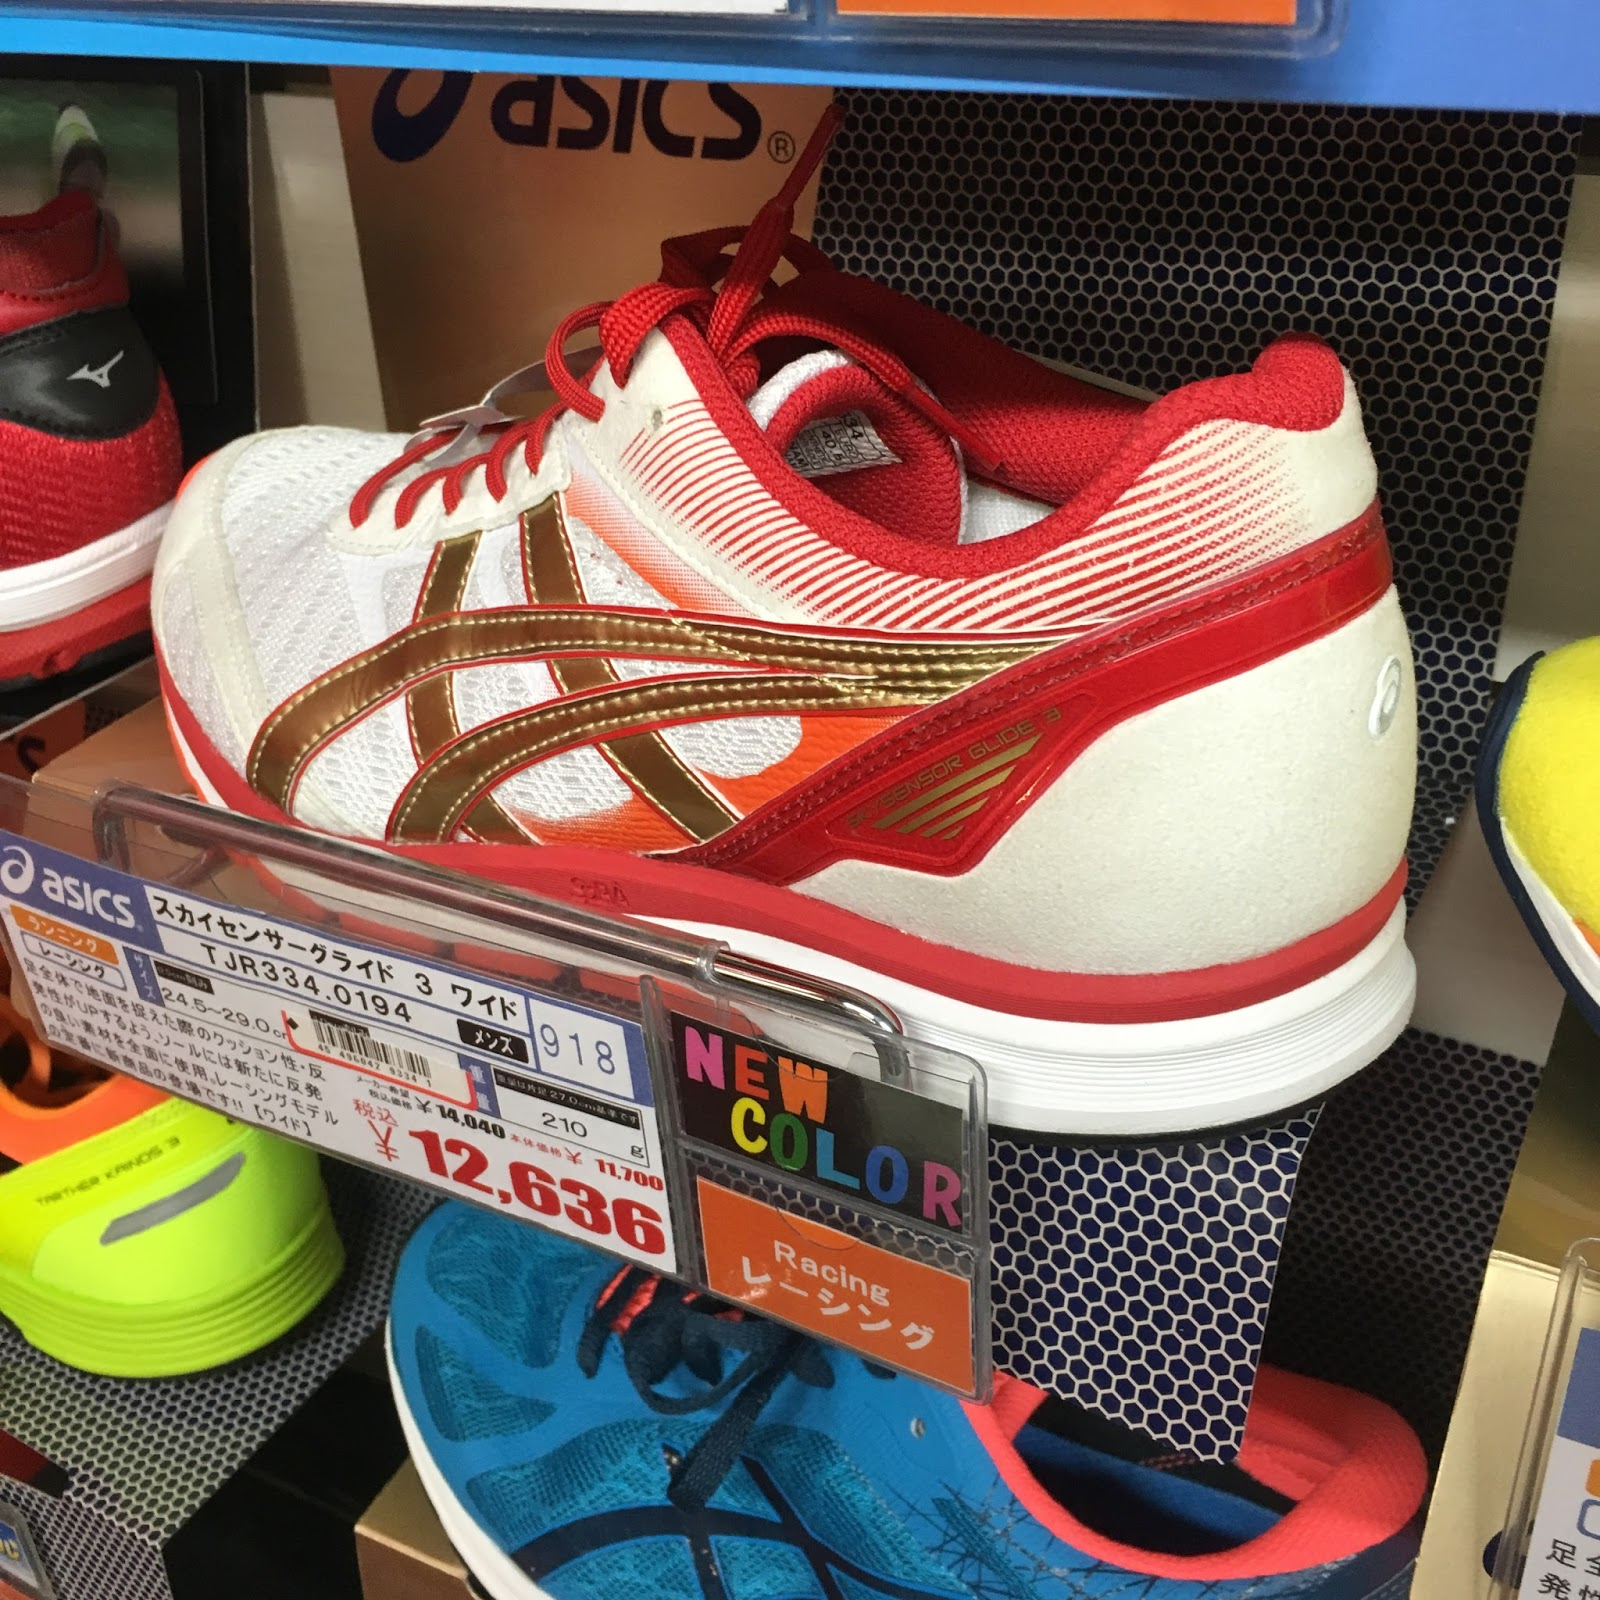 Road Trail Run Japan Edition Run Shoes Spotted At The